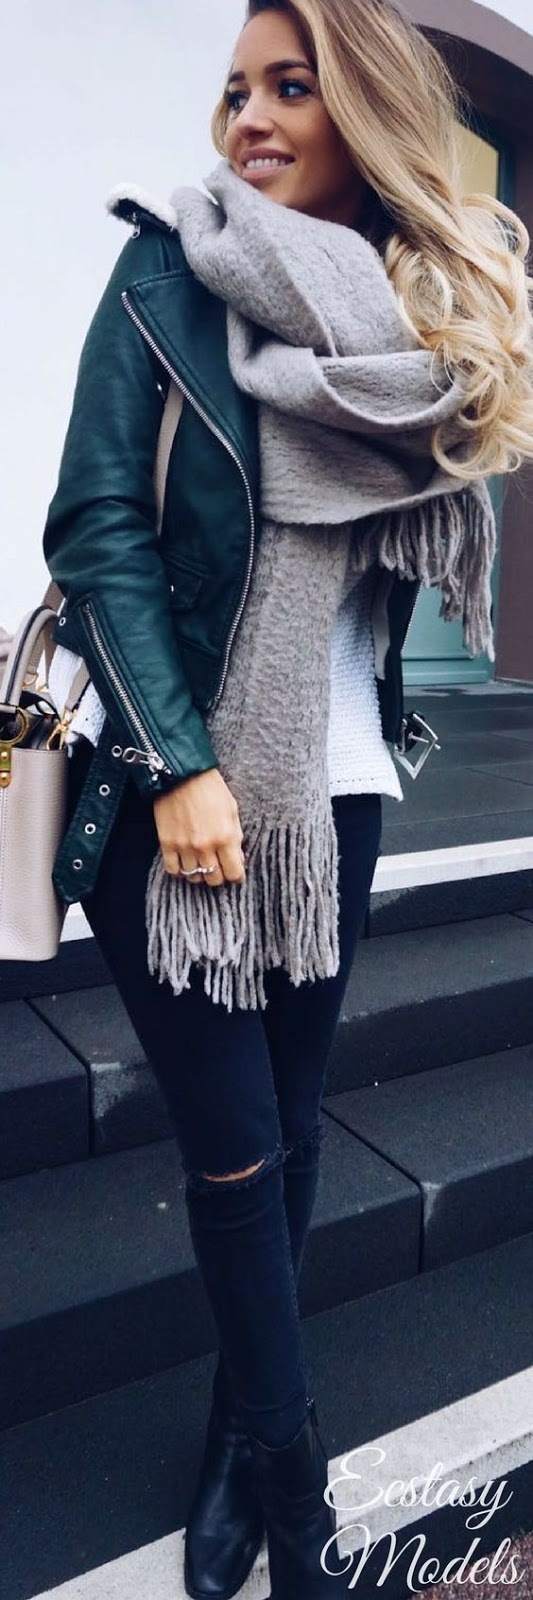 street style perfection / sweater + scarf + moto jacket + bag + black skinnies